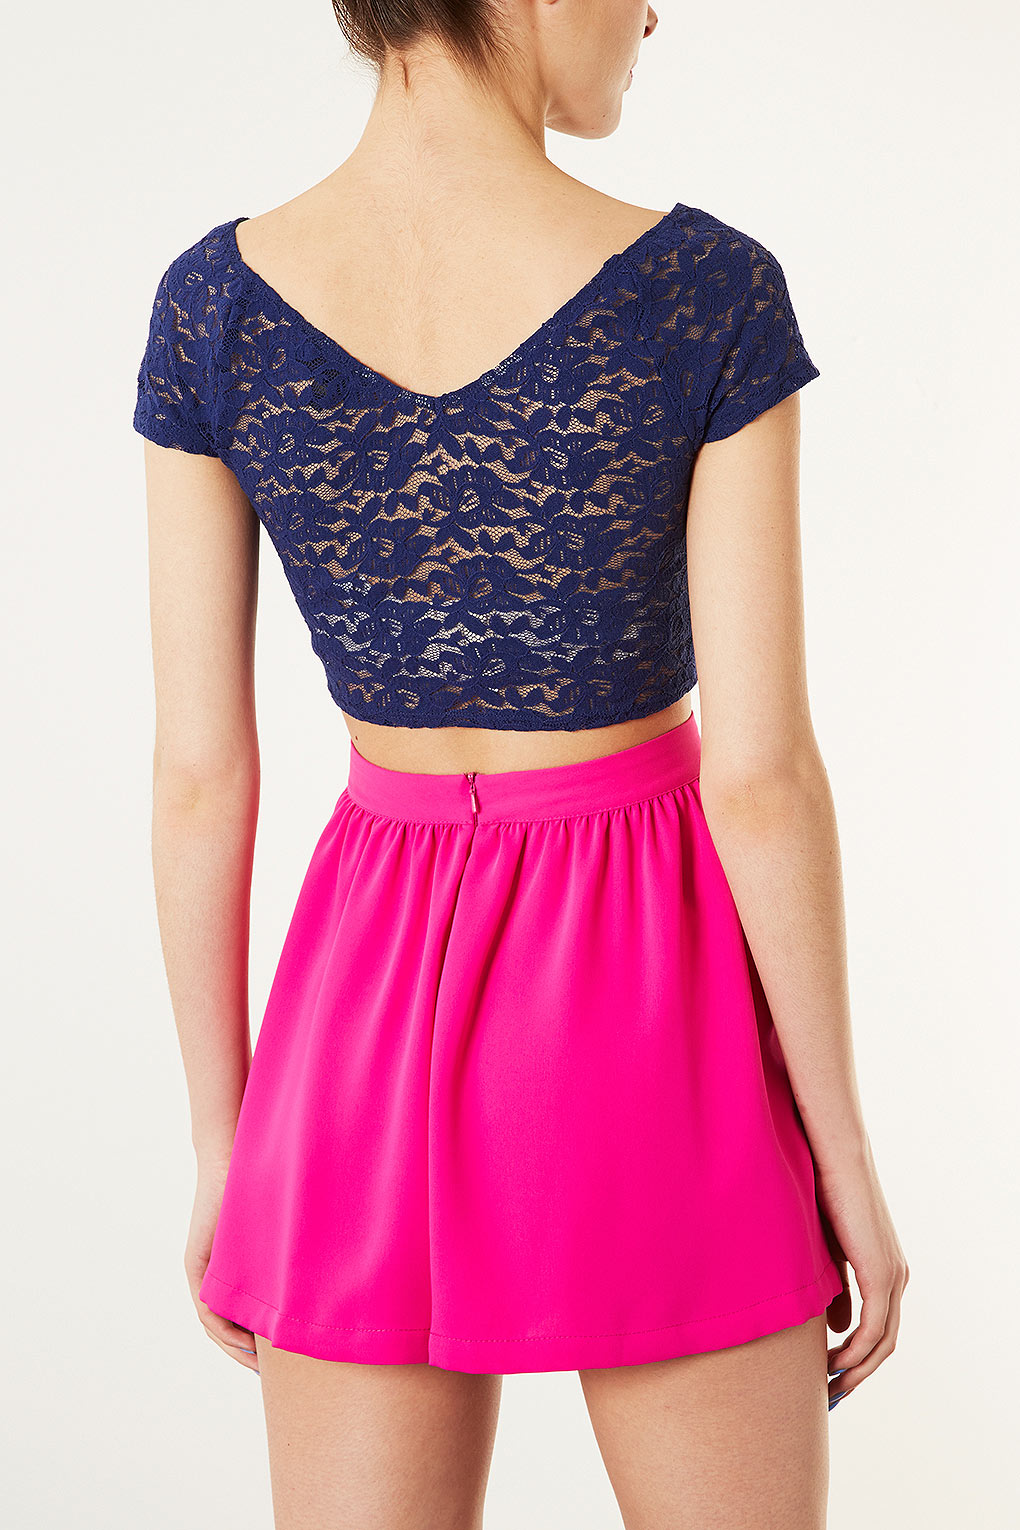 Lyst Topshop Lace Bardot Crop Top In Blue